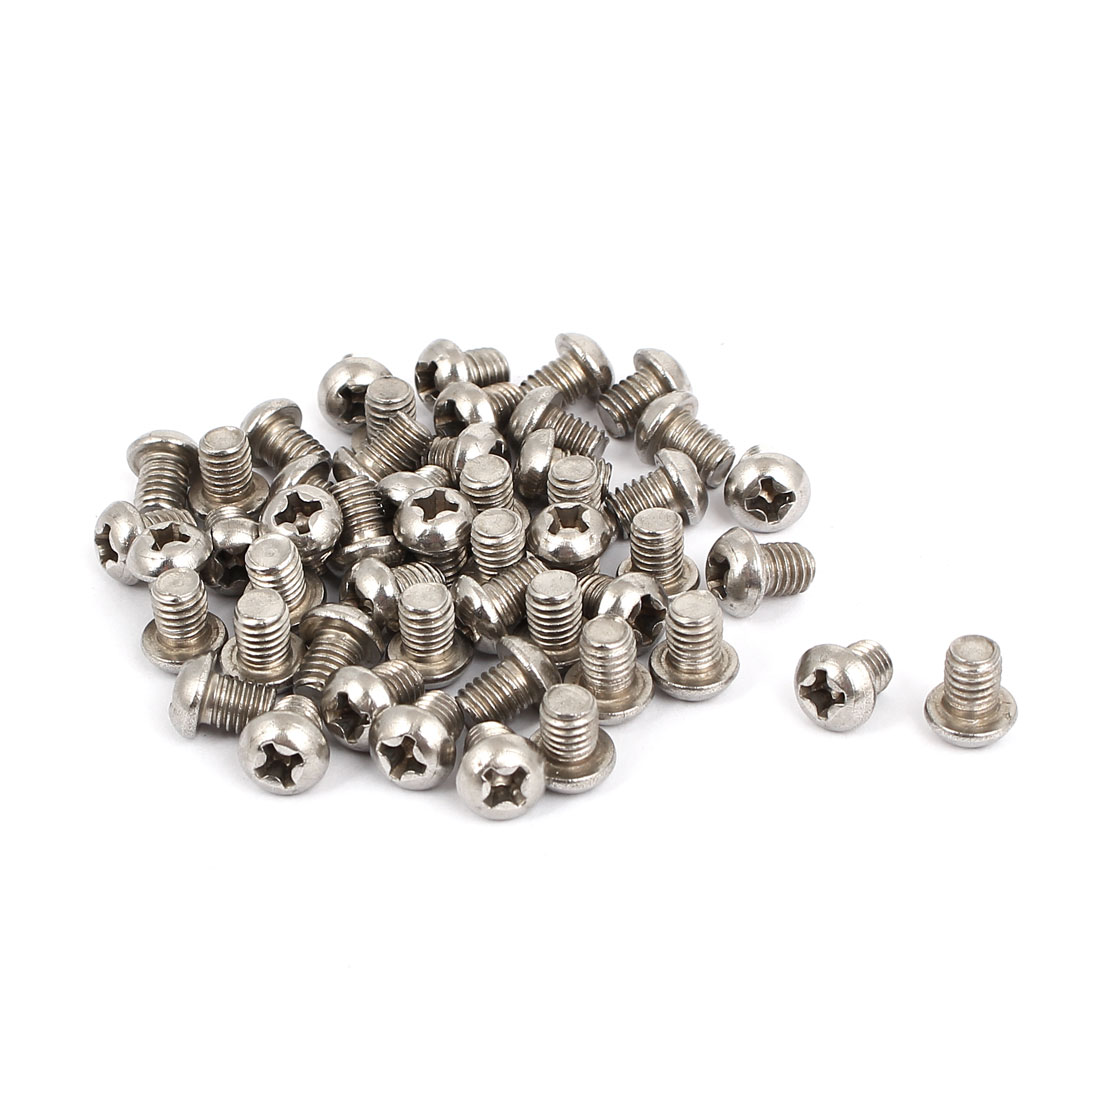 M5x6mm Stainless Steel Phillips Round Pan Head Machine Screws 50pcs